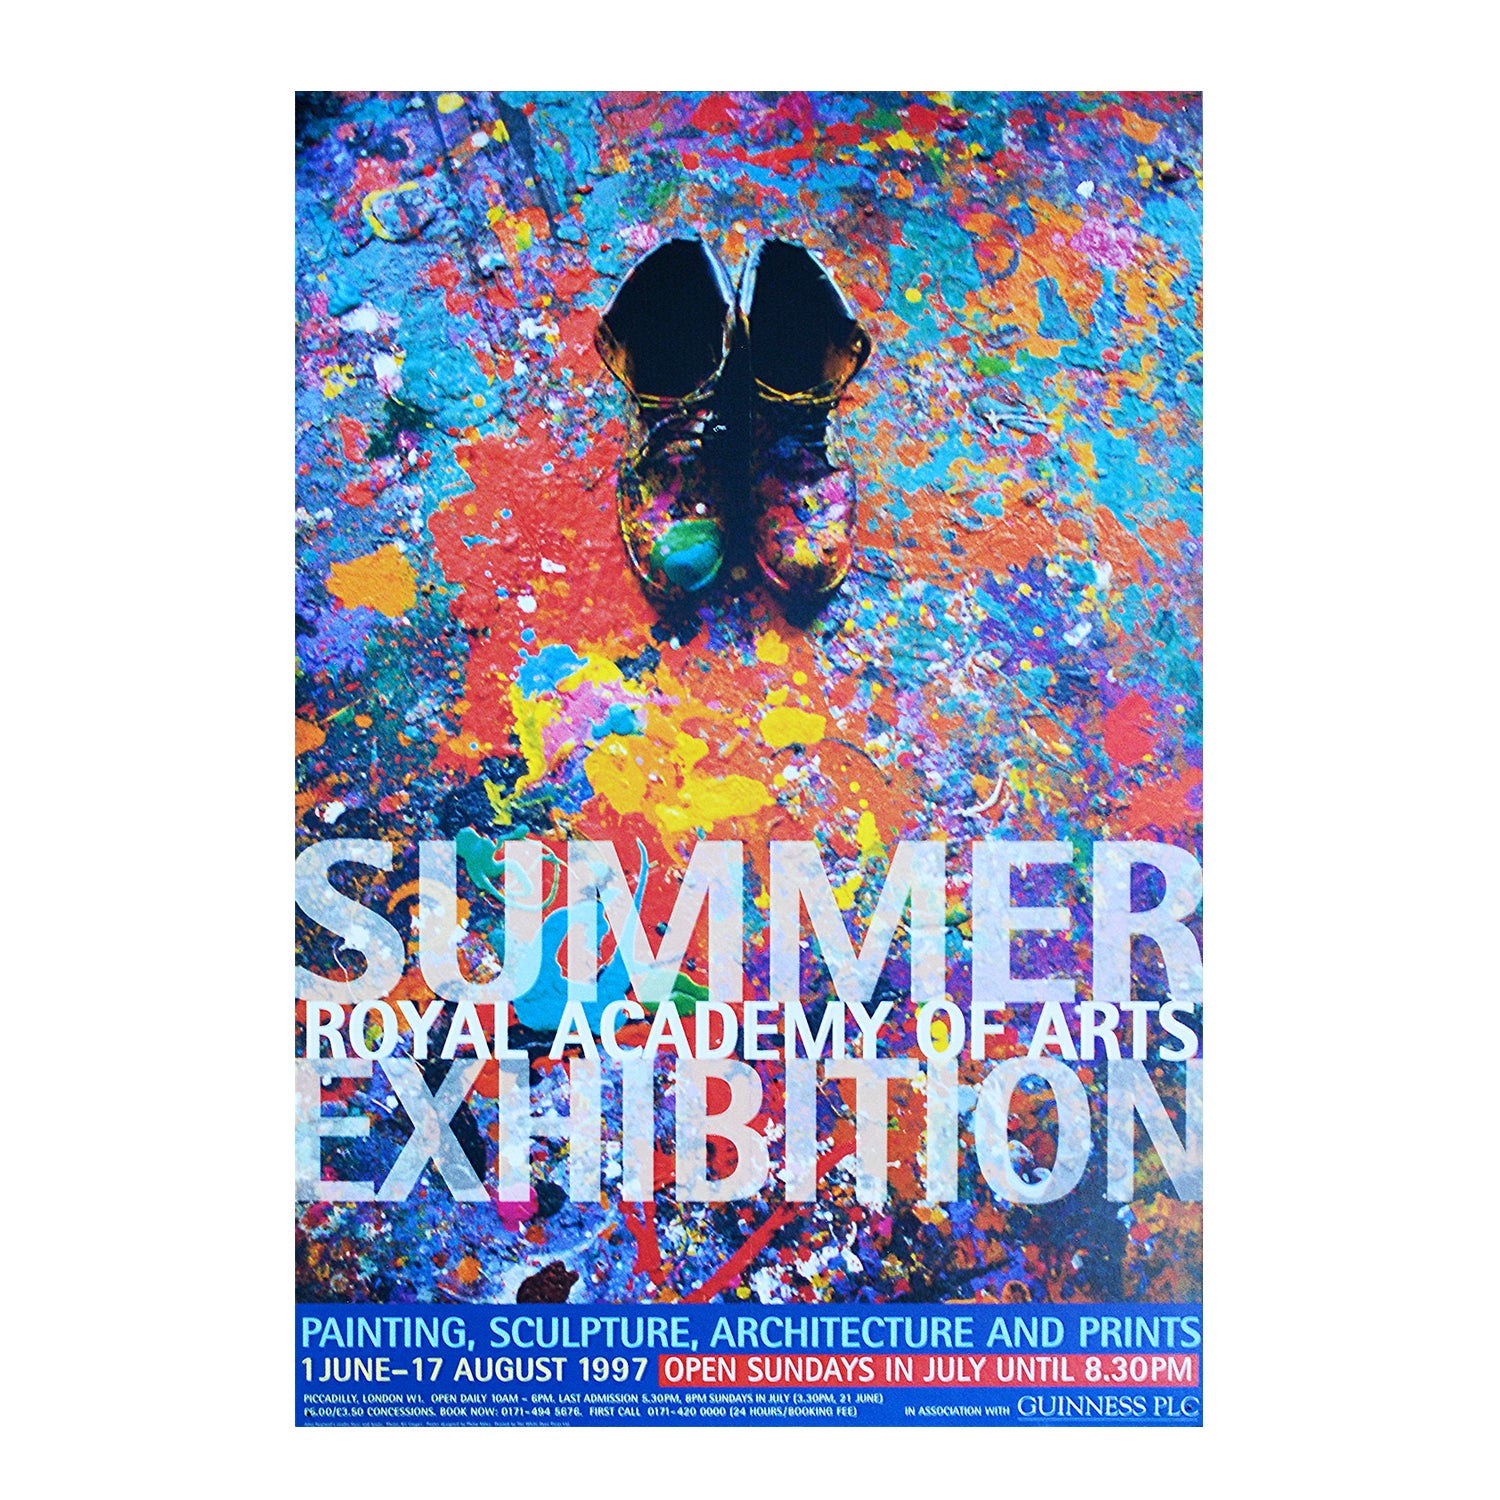 Royal Academy Summer Exhibition, 1997